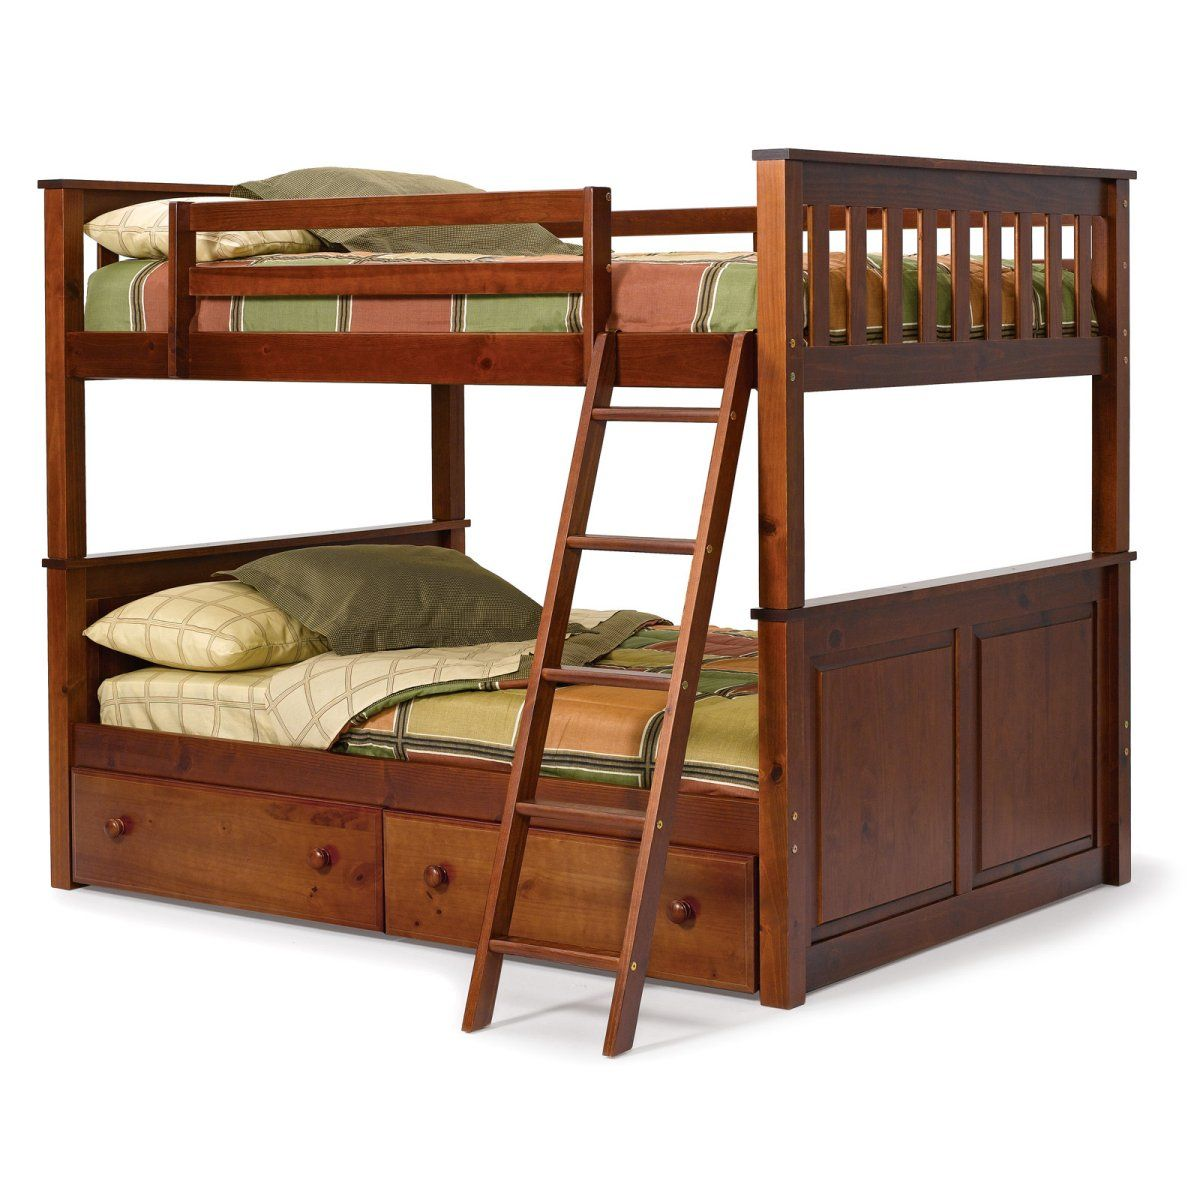 Scenic Brown Wooden Bunk Beds With Drawer Stairs Also Shelves As Storage As Well As White Mattress As Inspirin Wooden Bunk Beds Bunk Beds Bunk Beds With Stairs